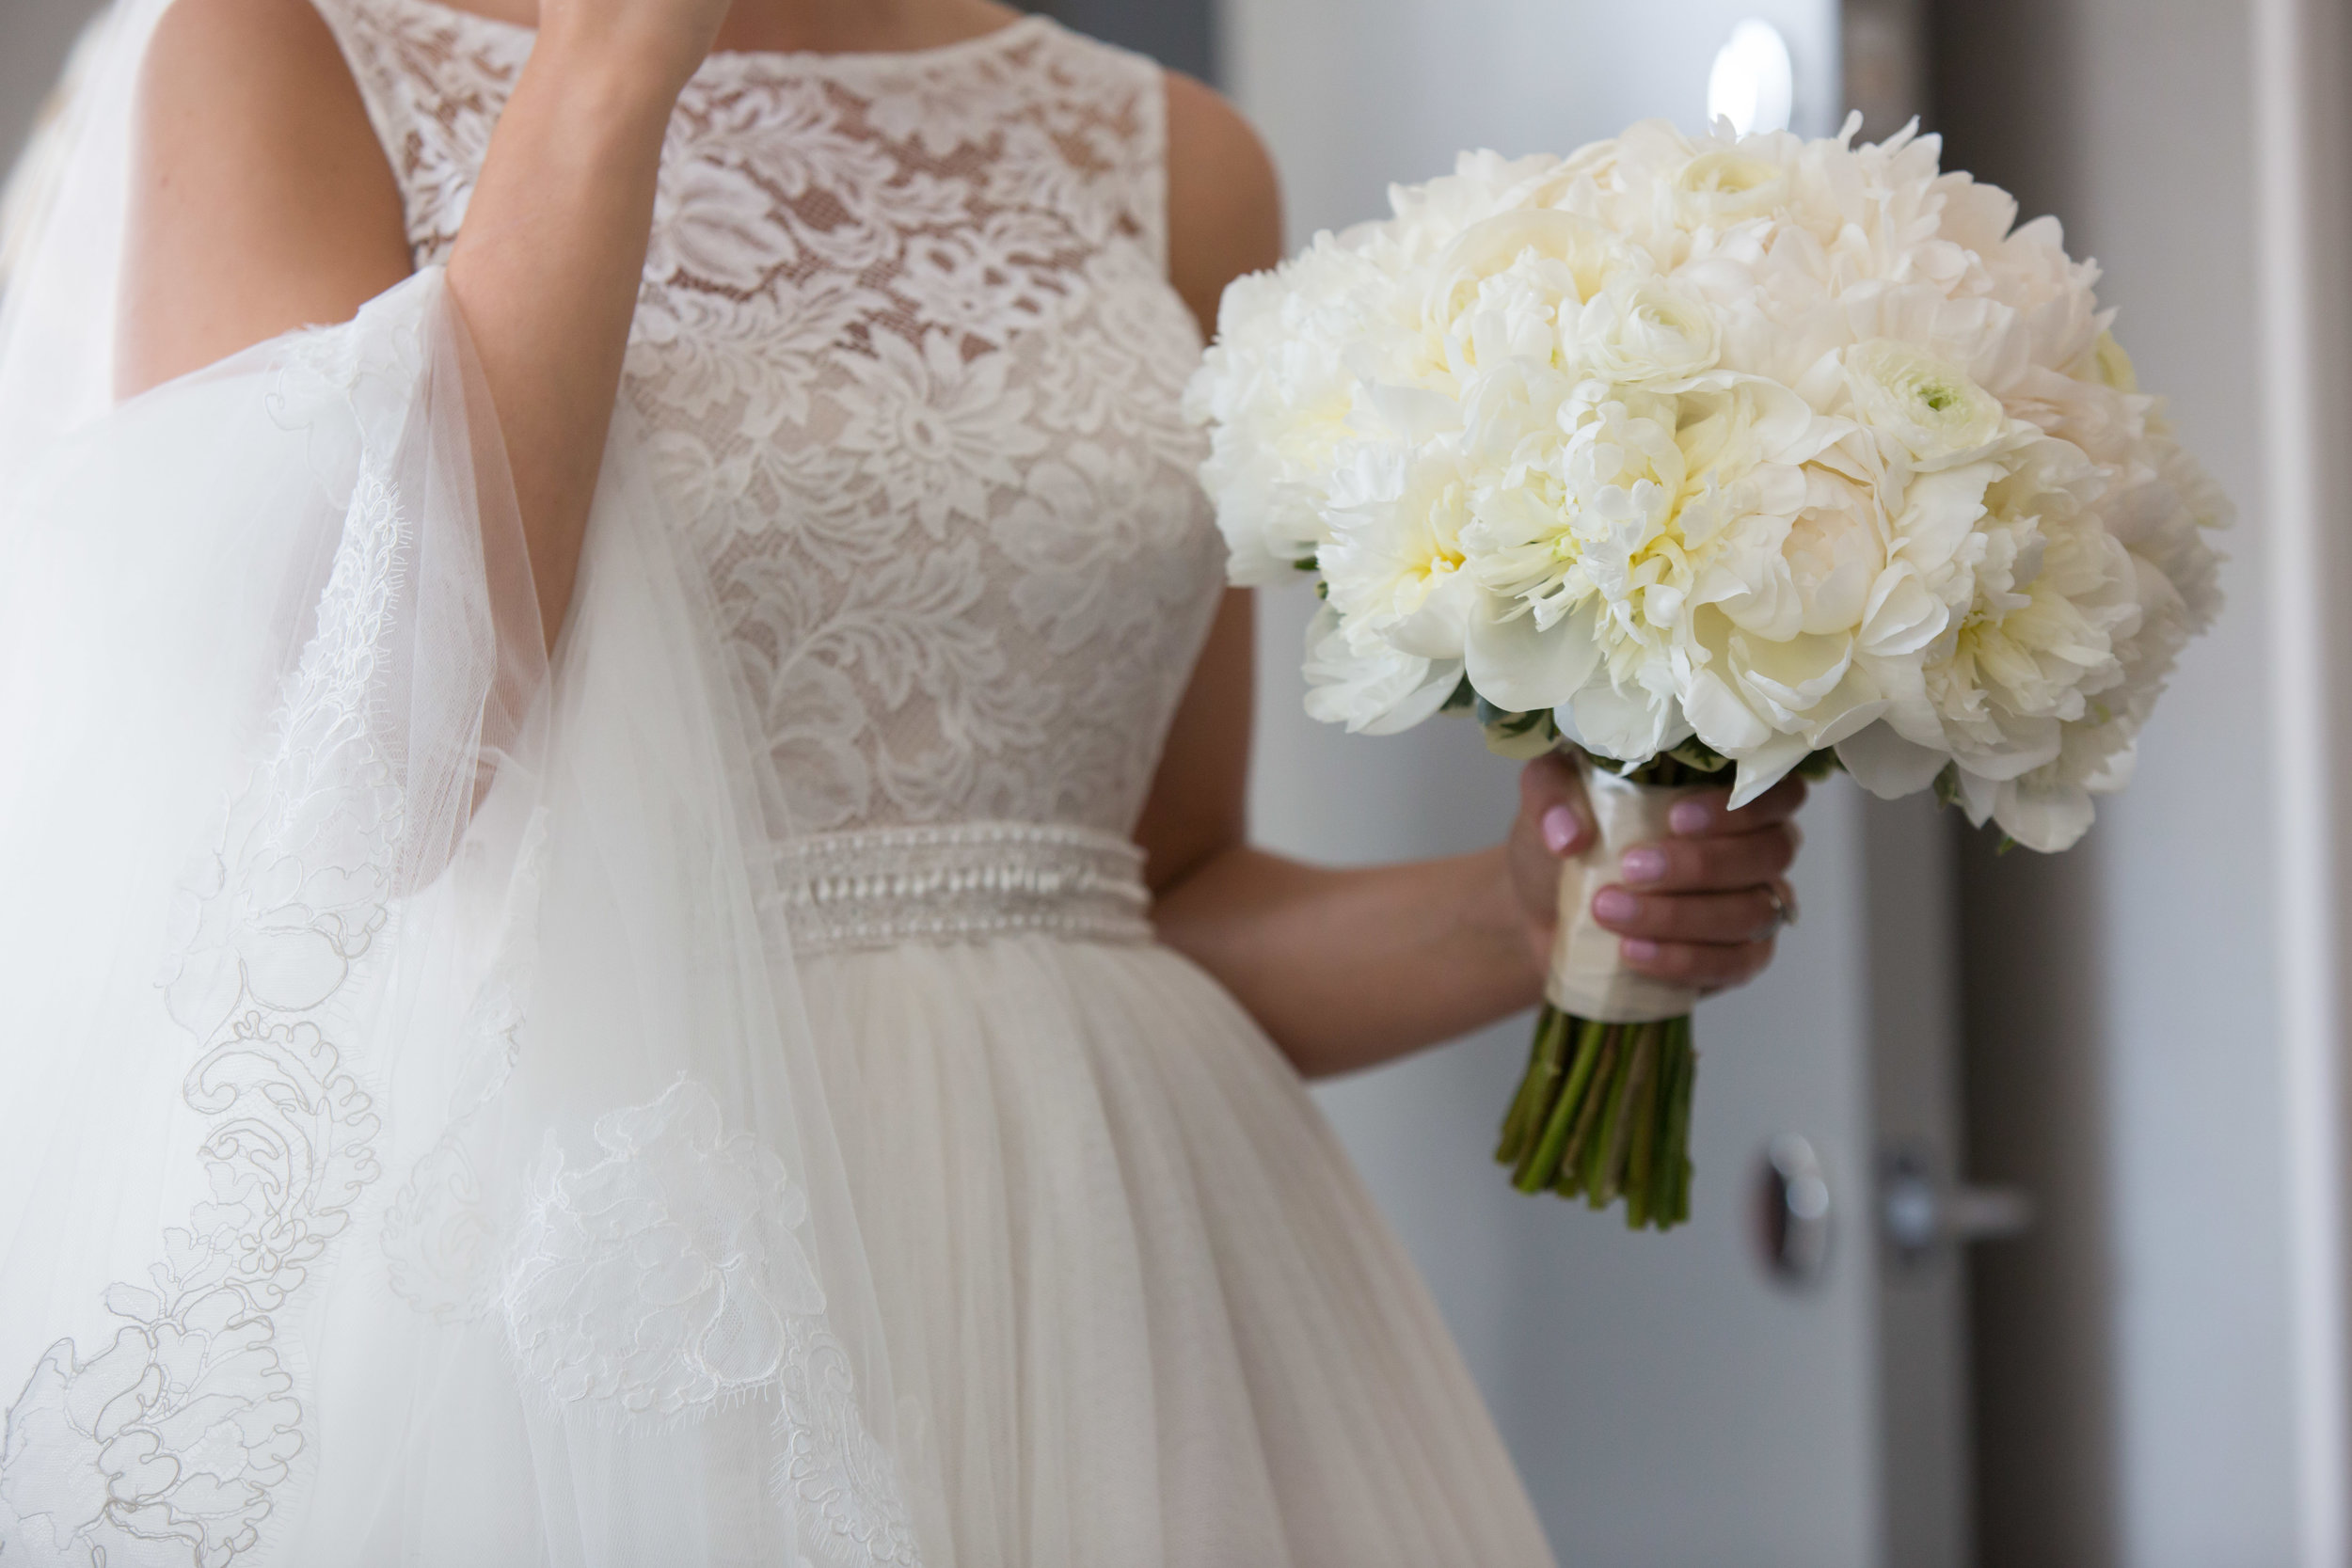 Wedding Dress  Bride  Bridal Bouquet  School of the Art Institute  Planning by Wrap It Up Parties